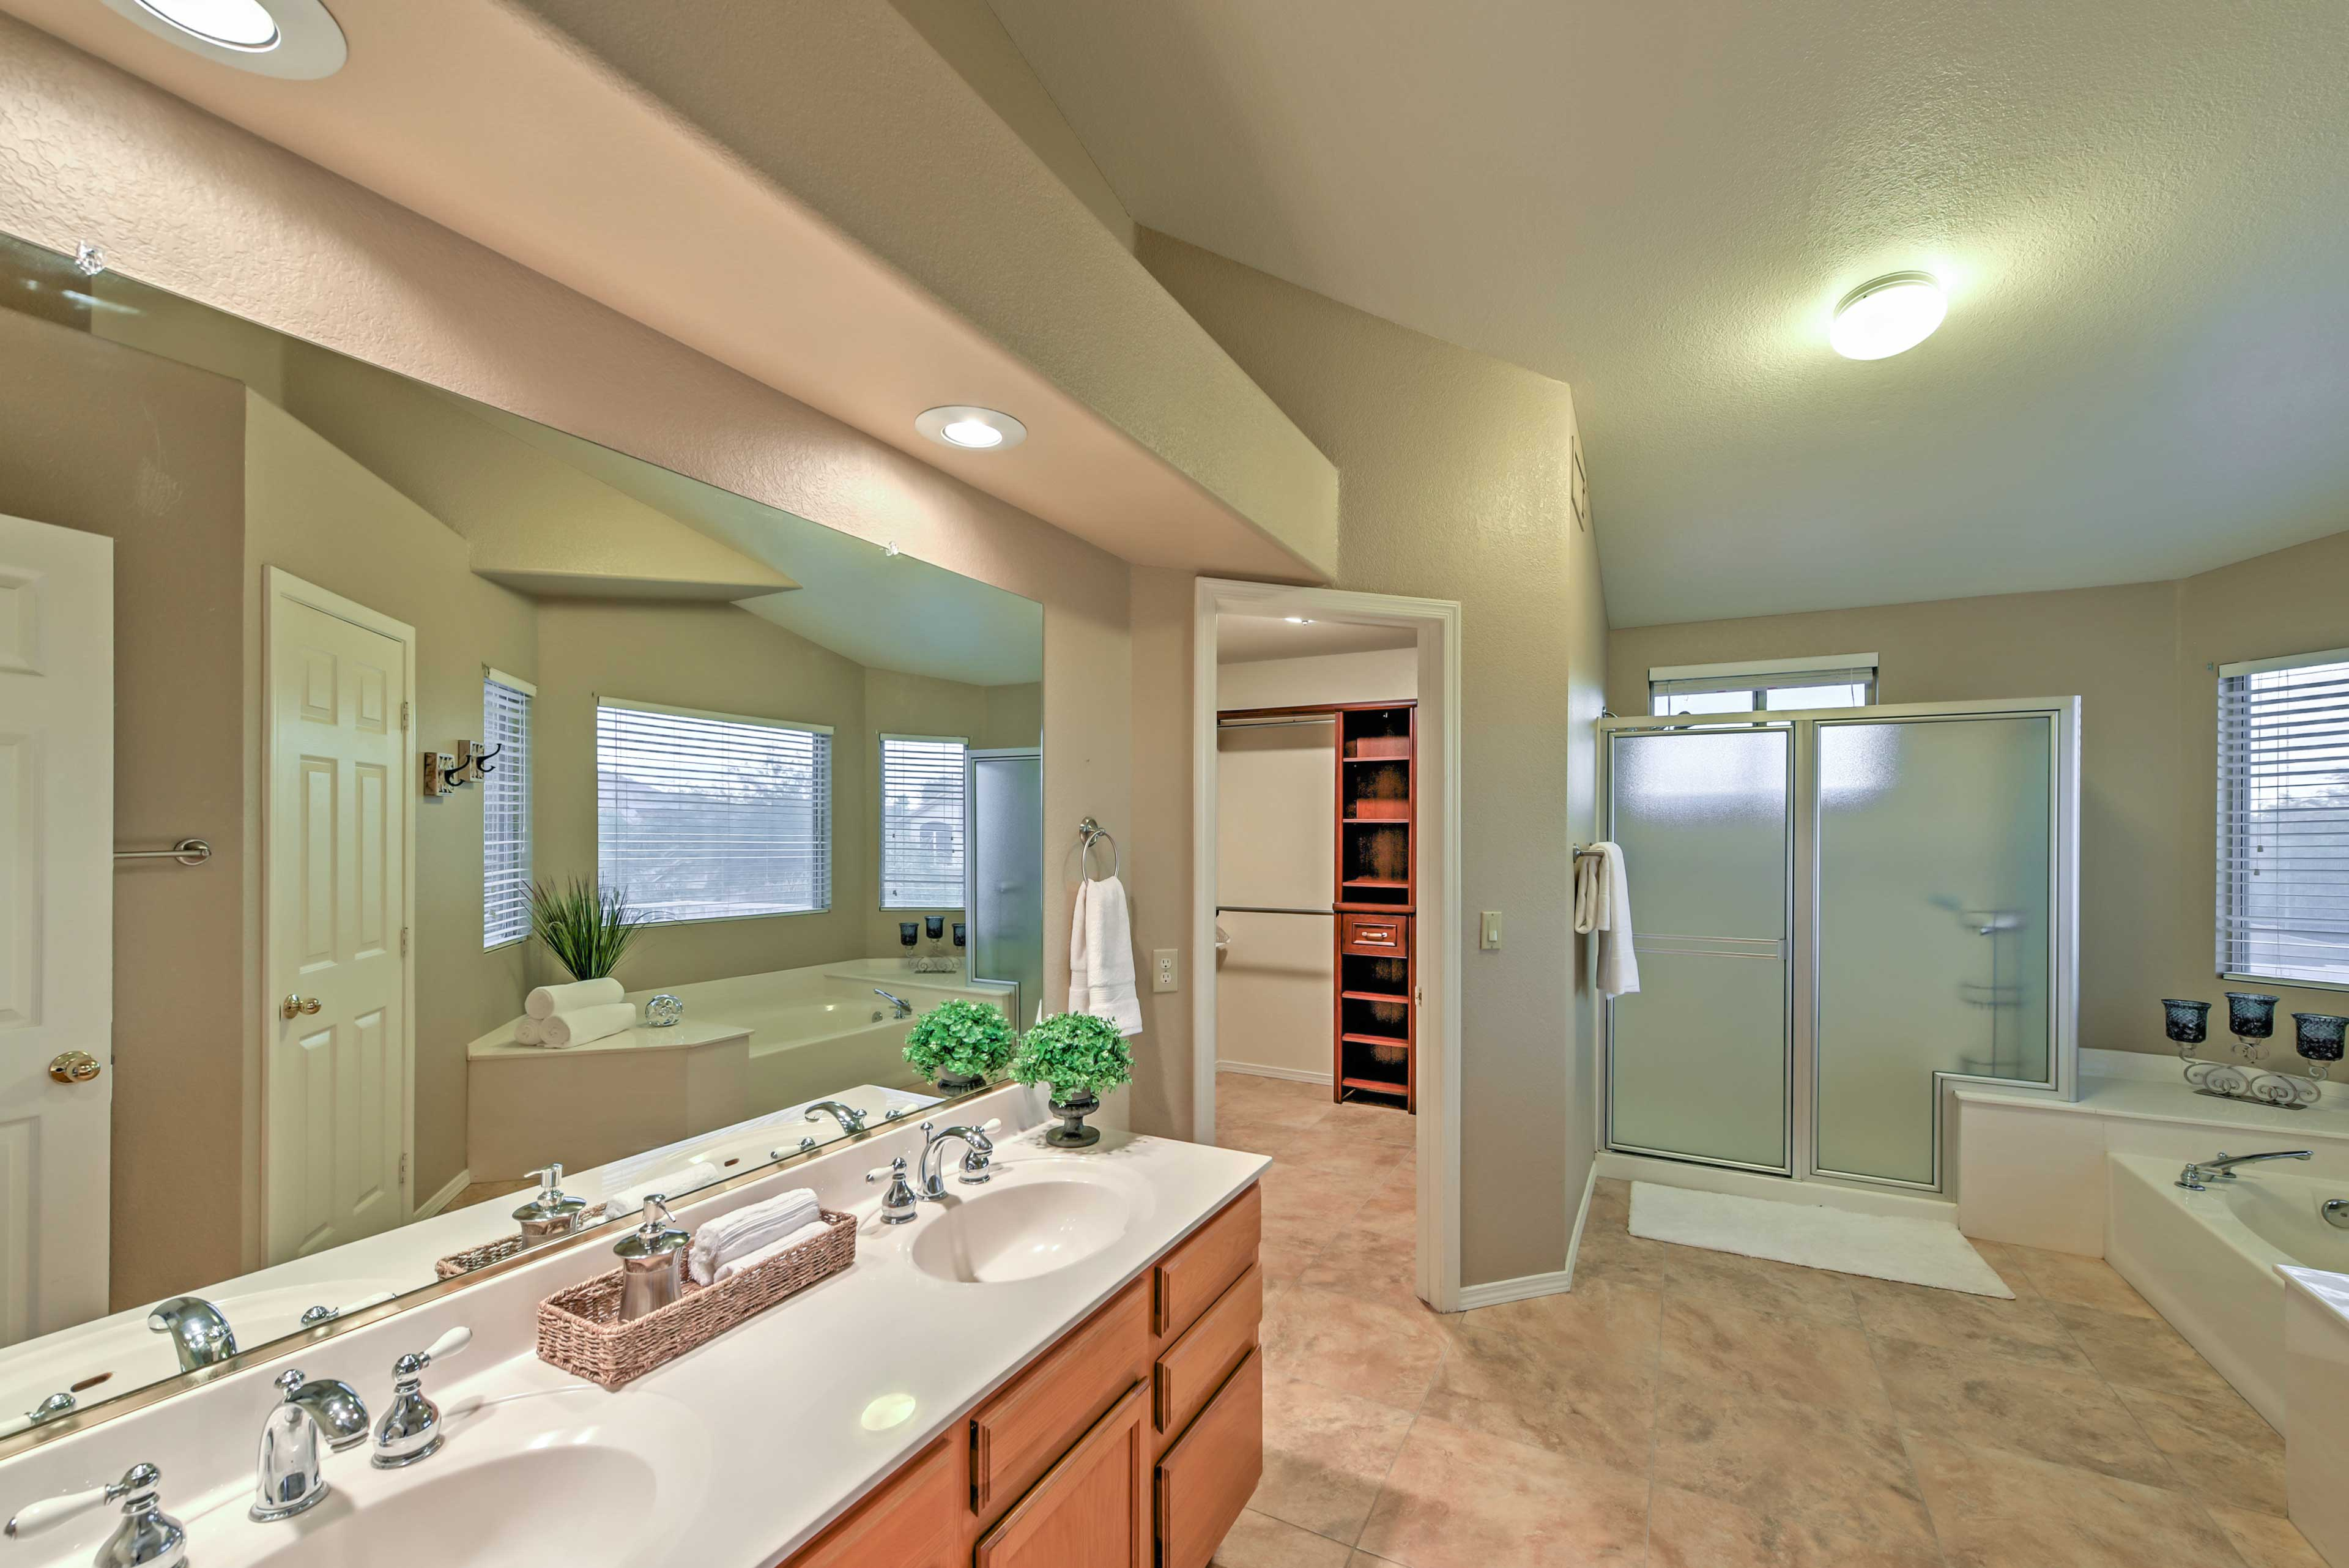 There's plenty of space for couples to get ready at the double vanity.